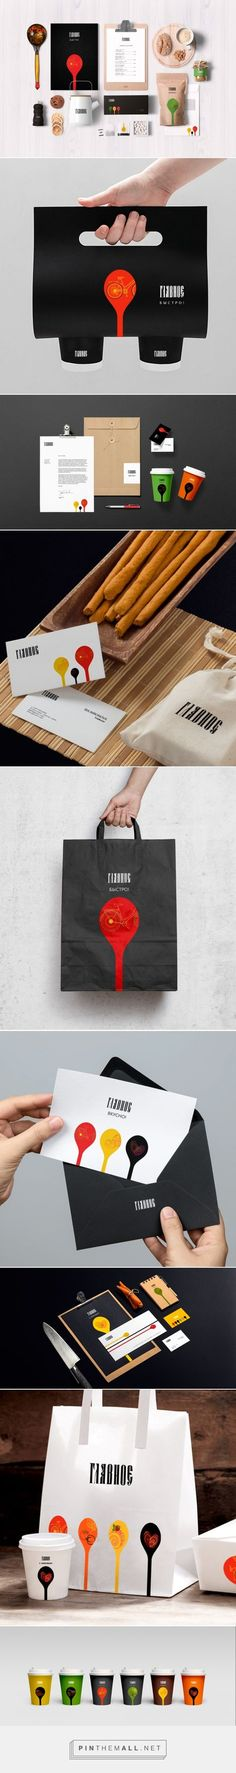 Naming, branding and packaging design for Glavnoe via Maeutica curated by Packaging Diva PD. A chain of fast-food restaurants in Russia, emphasizing the traditions of Russian national cuisine.